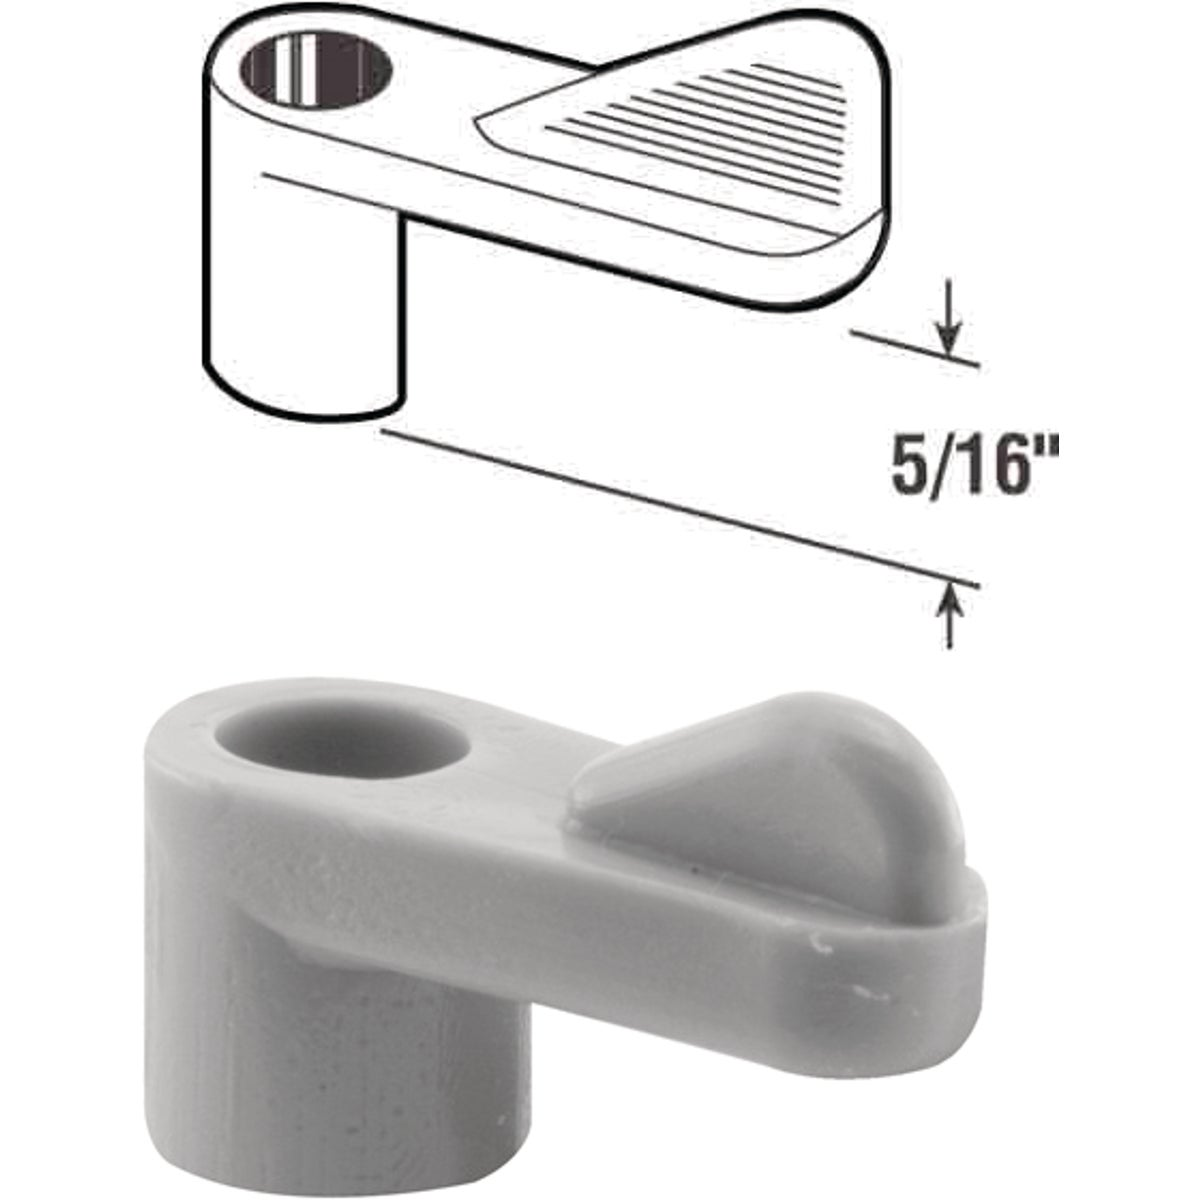 "5/16"" GRAY SCREEN CLIP - PL7741 by Prime Line Products"